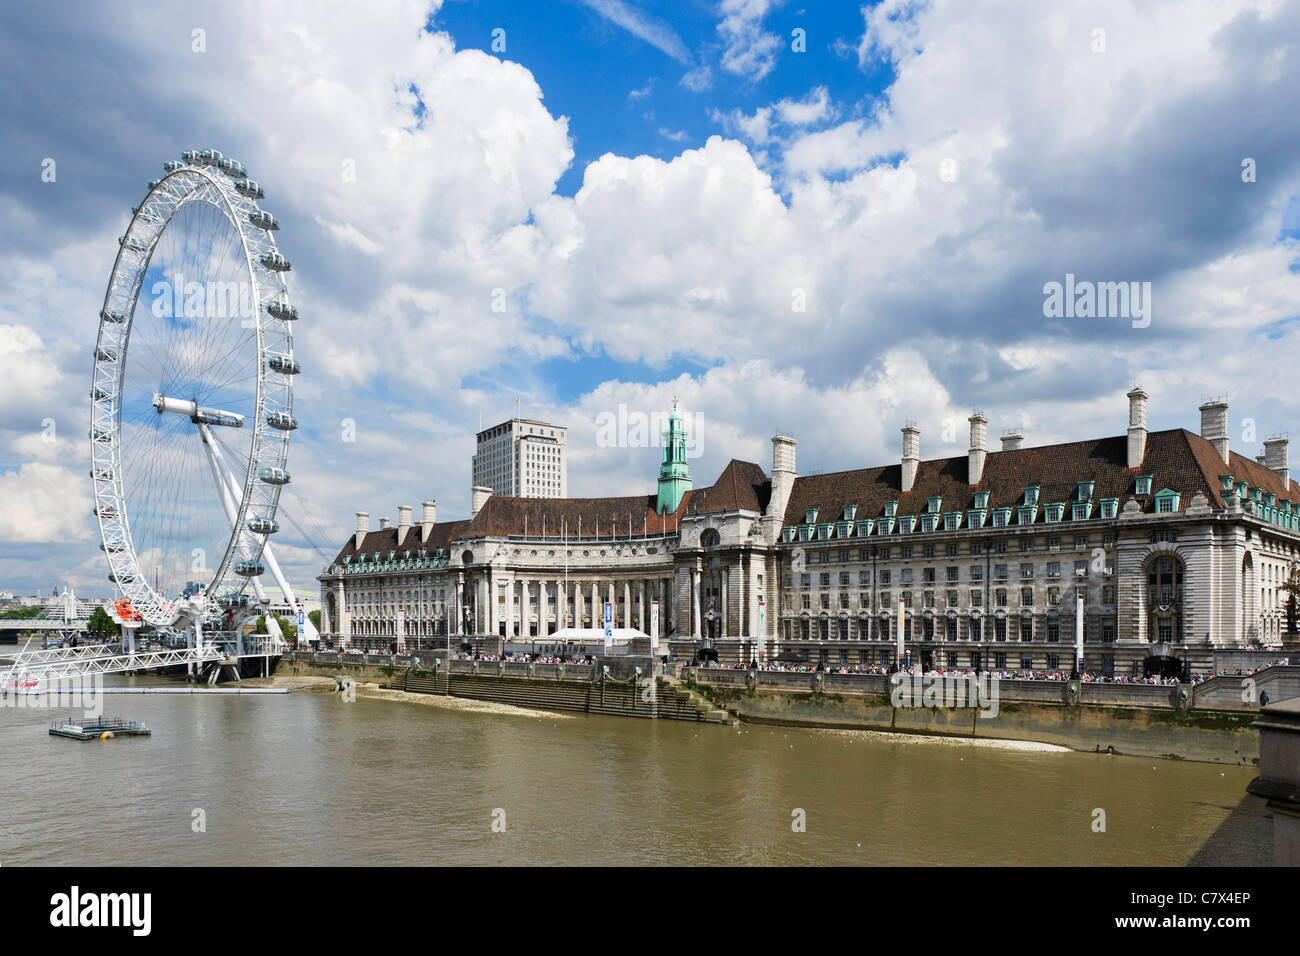 County Hall and The London Eye from Westminster Bridge, London, England - Stock Image